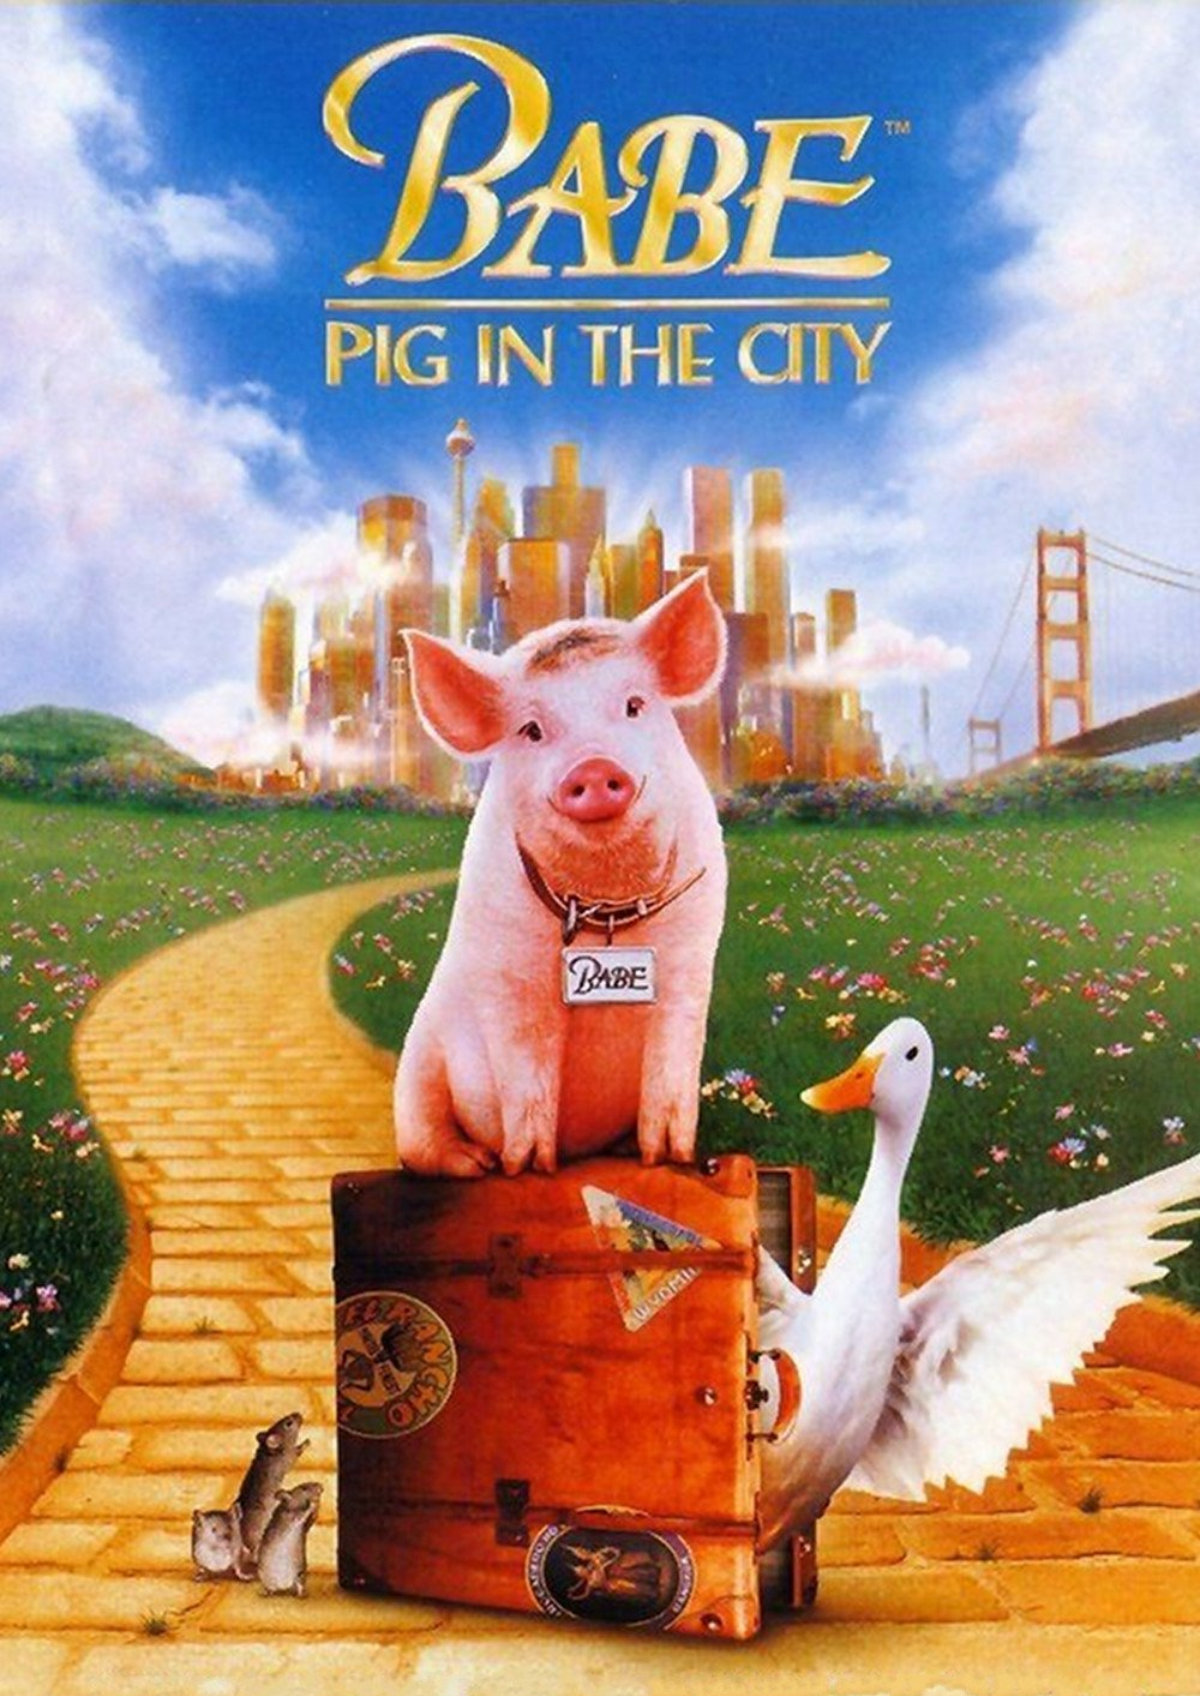 'Babe: Pig in the City' movie poster